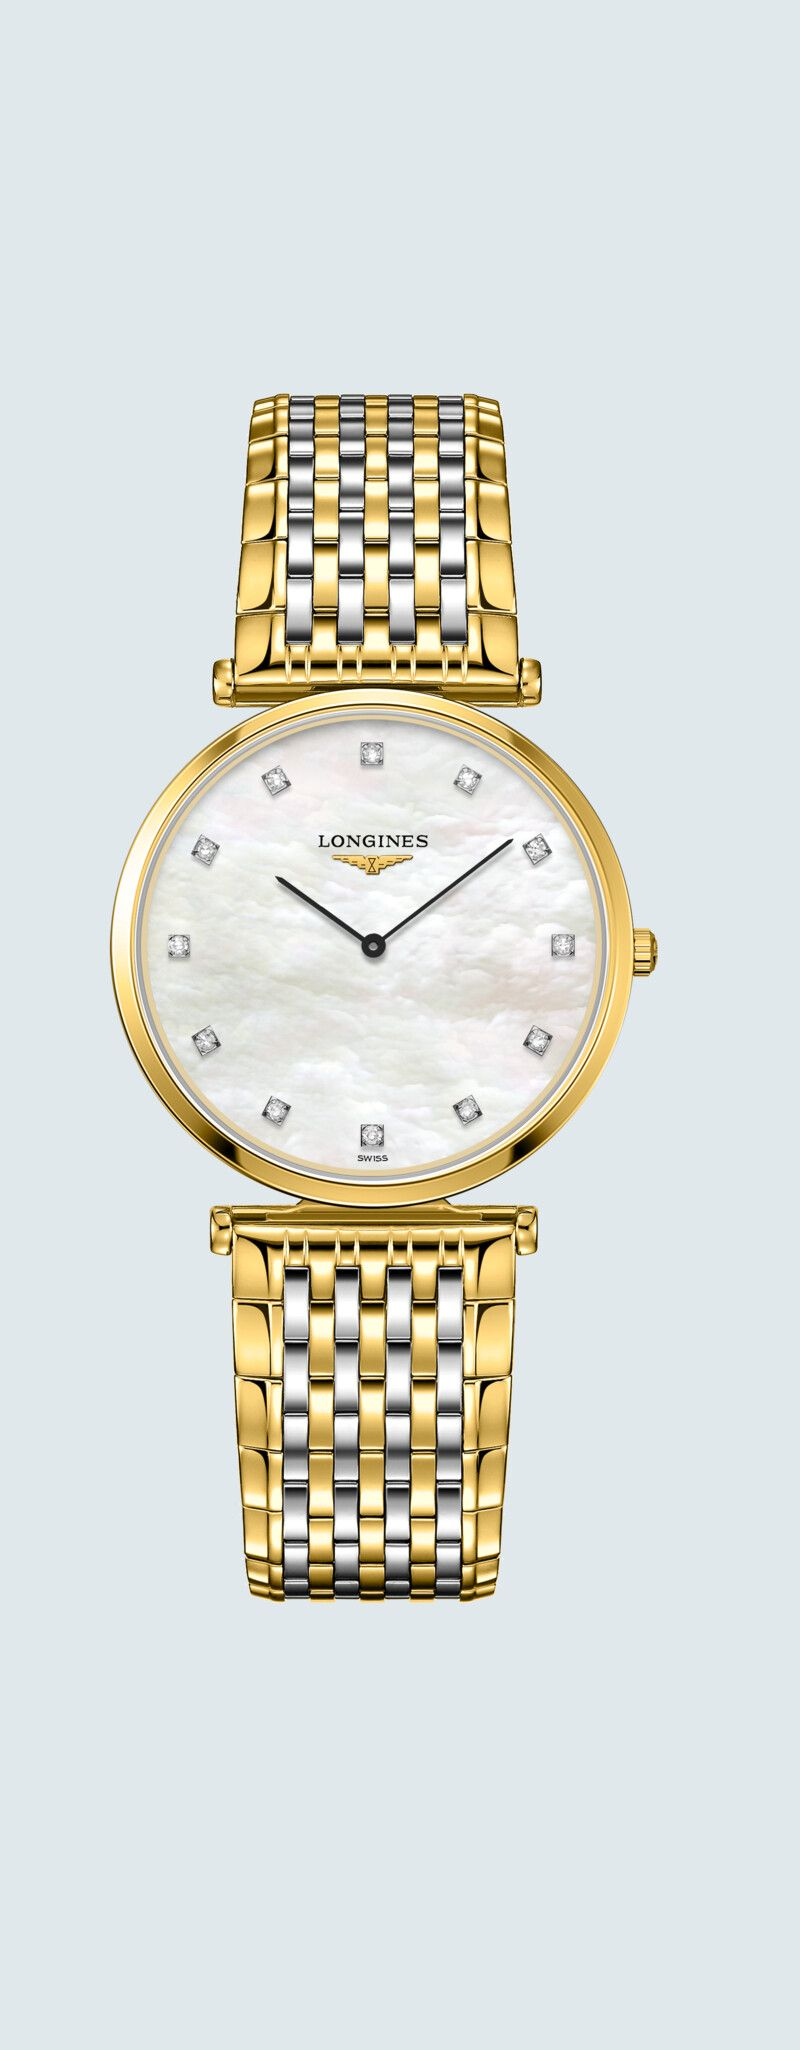 33.00 mm Yellow PVD coating case with White mother-of-pearl dial and Stainless steel and yellow PVD